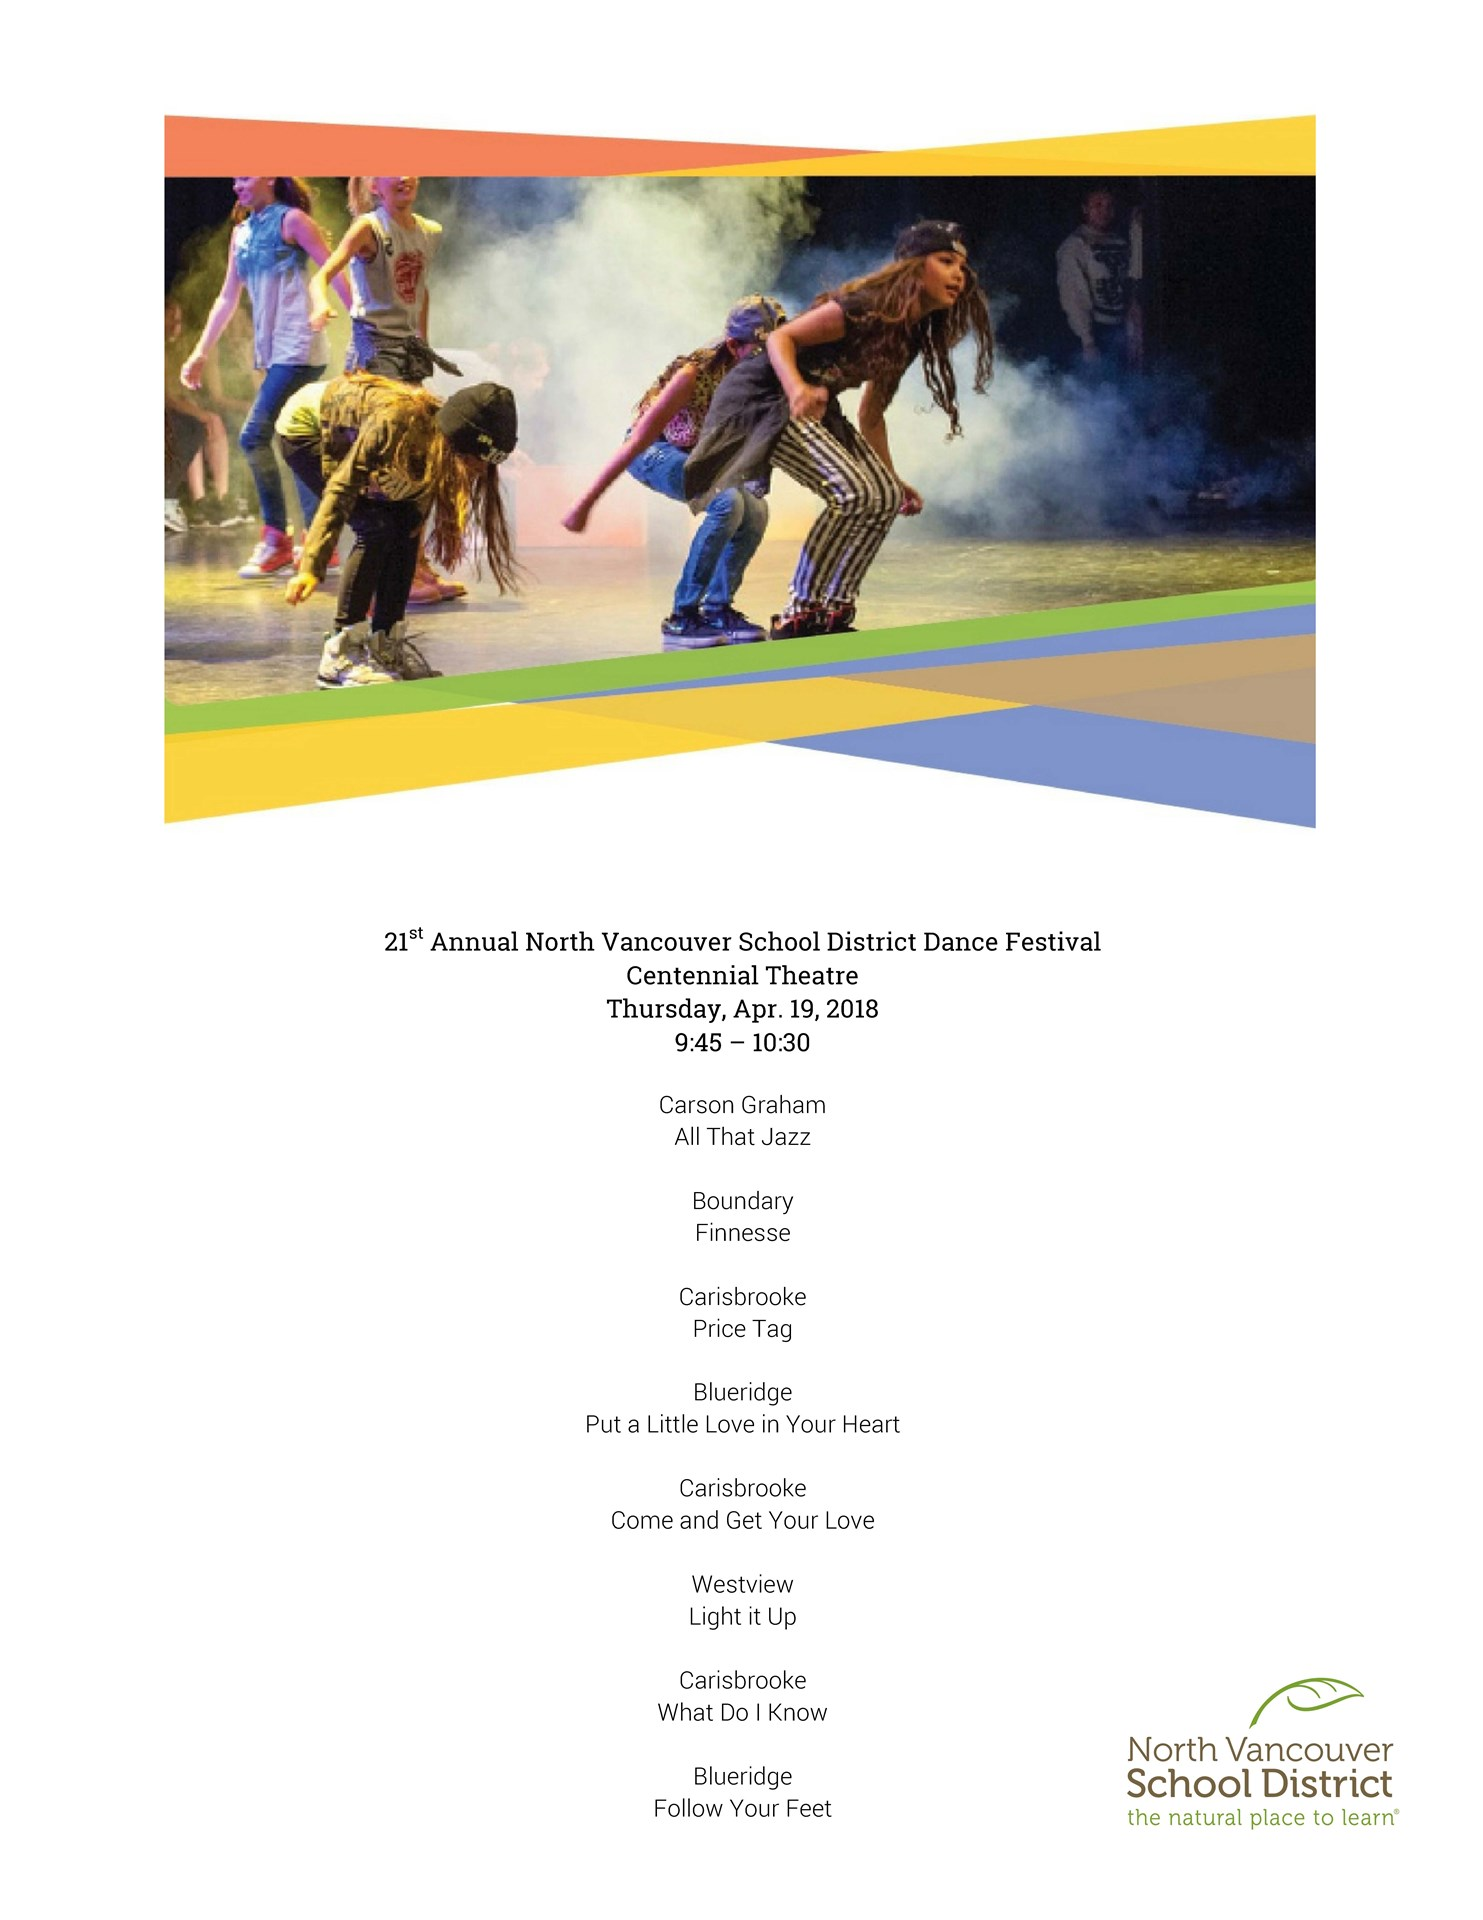 NVSD Dance Festival Program April 2018_Page_1.jpg